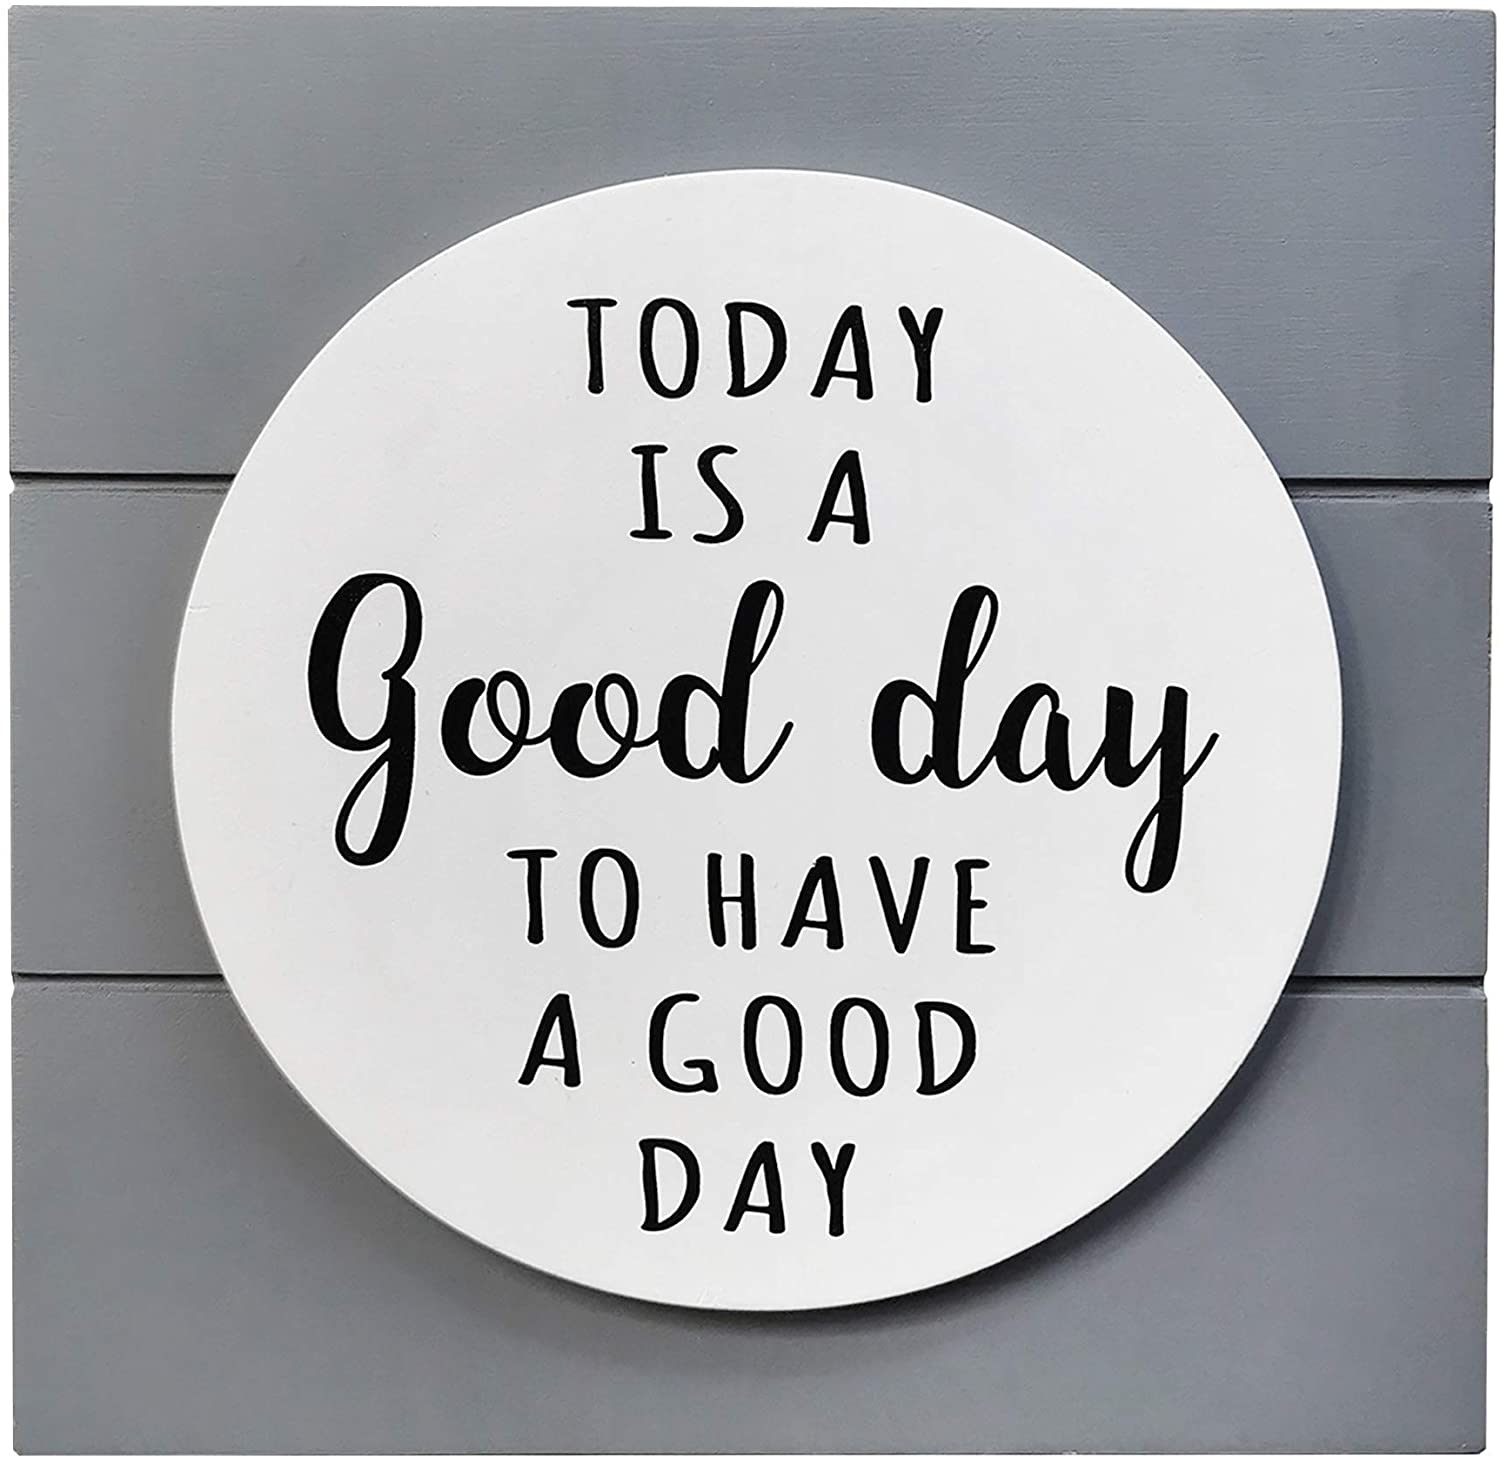 NITYNP Today is A Good Day Wall Art Decor, Hanging and Standing Desk Block Sign 7.8